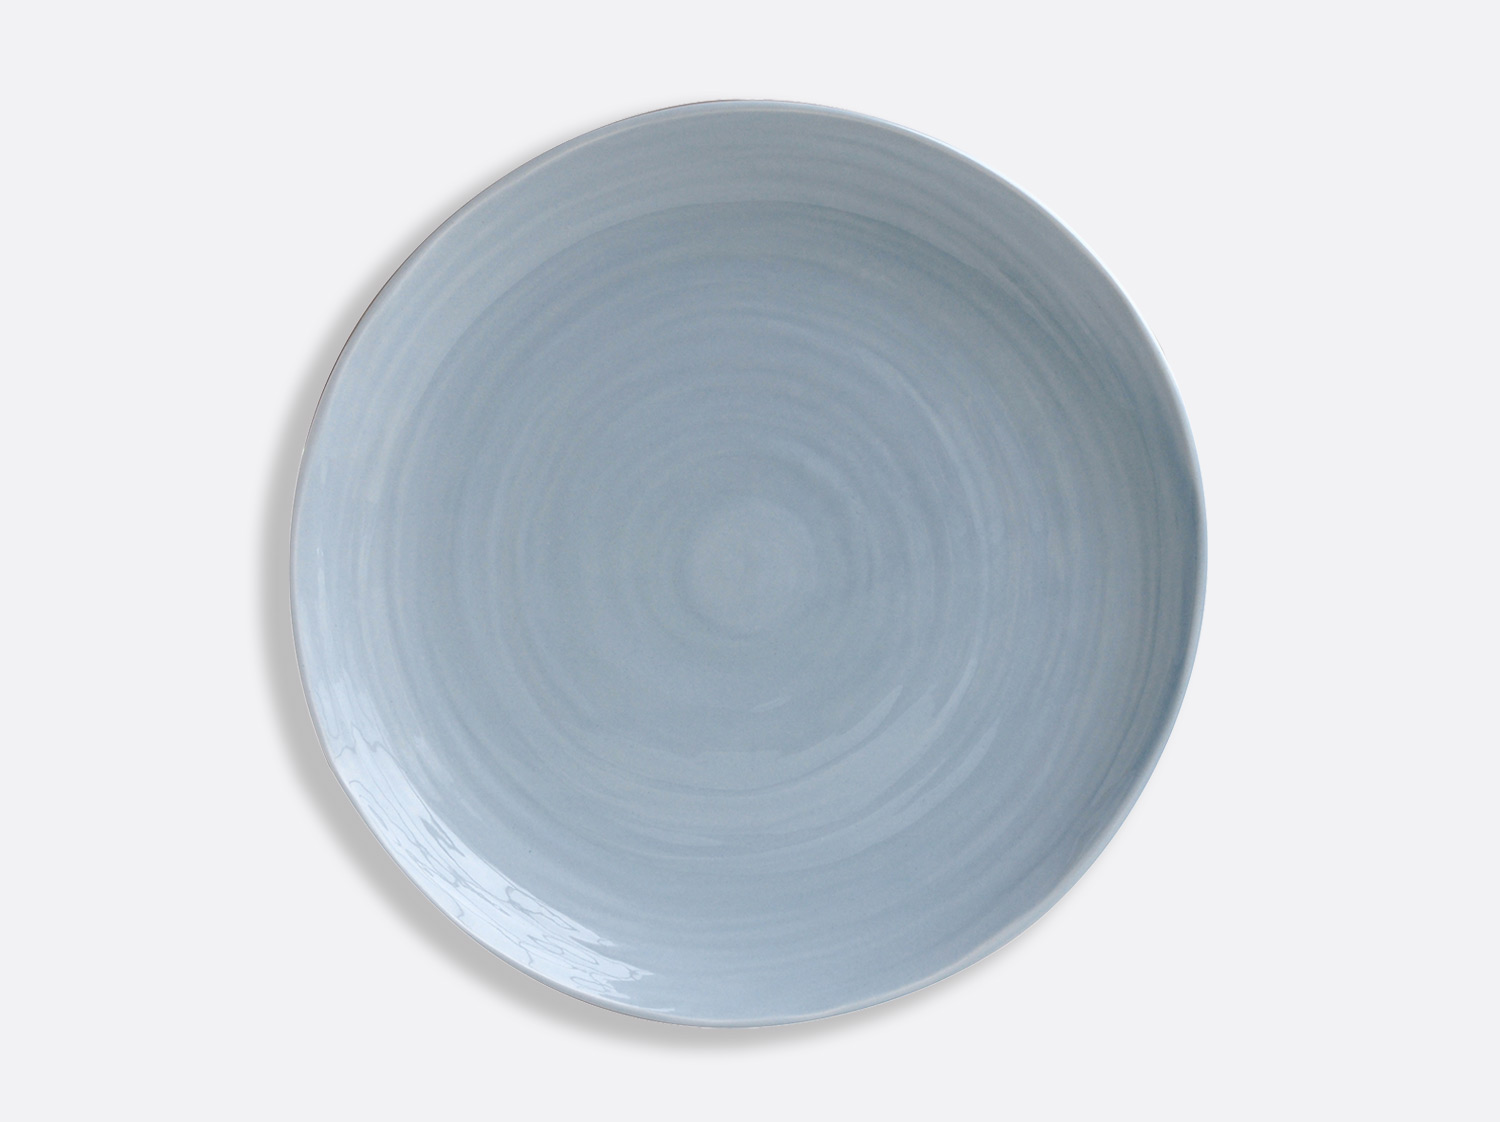 China Blue plate 31 cm of the collection Origine bleu | Bernardaud